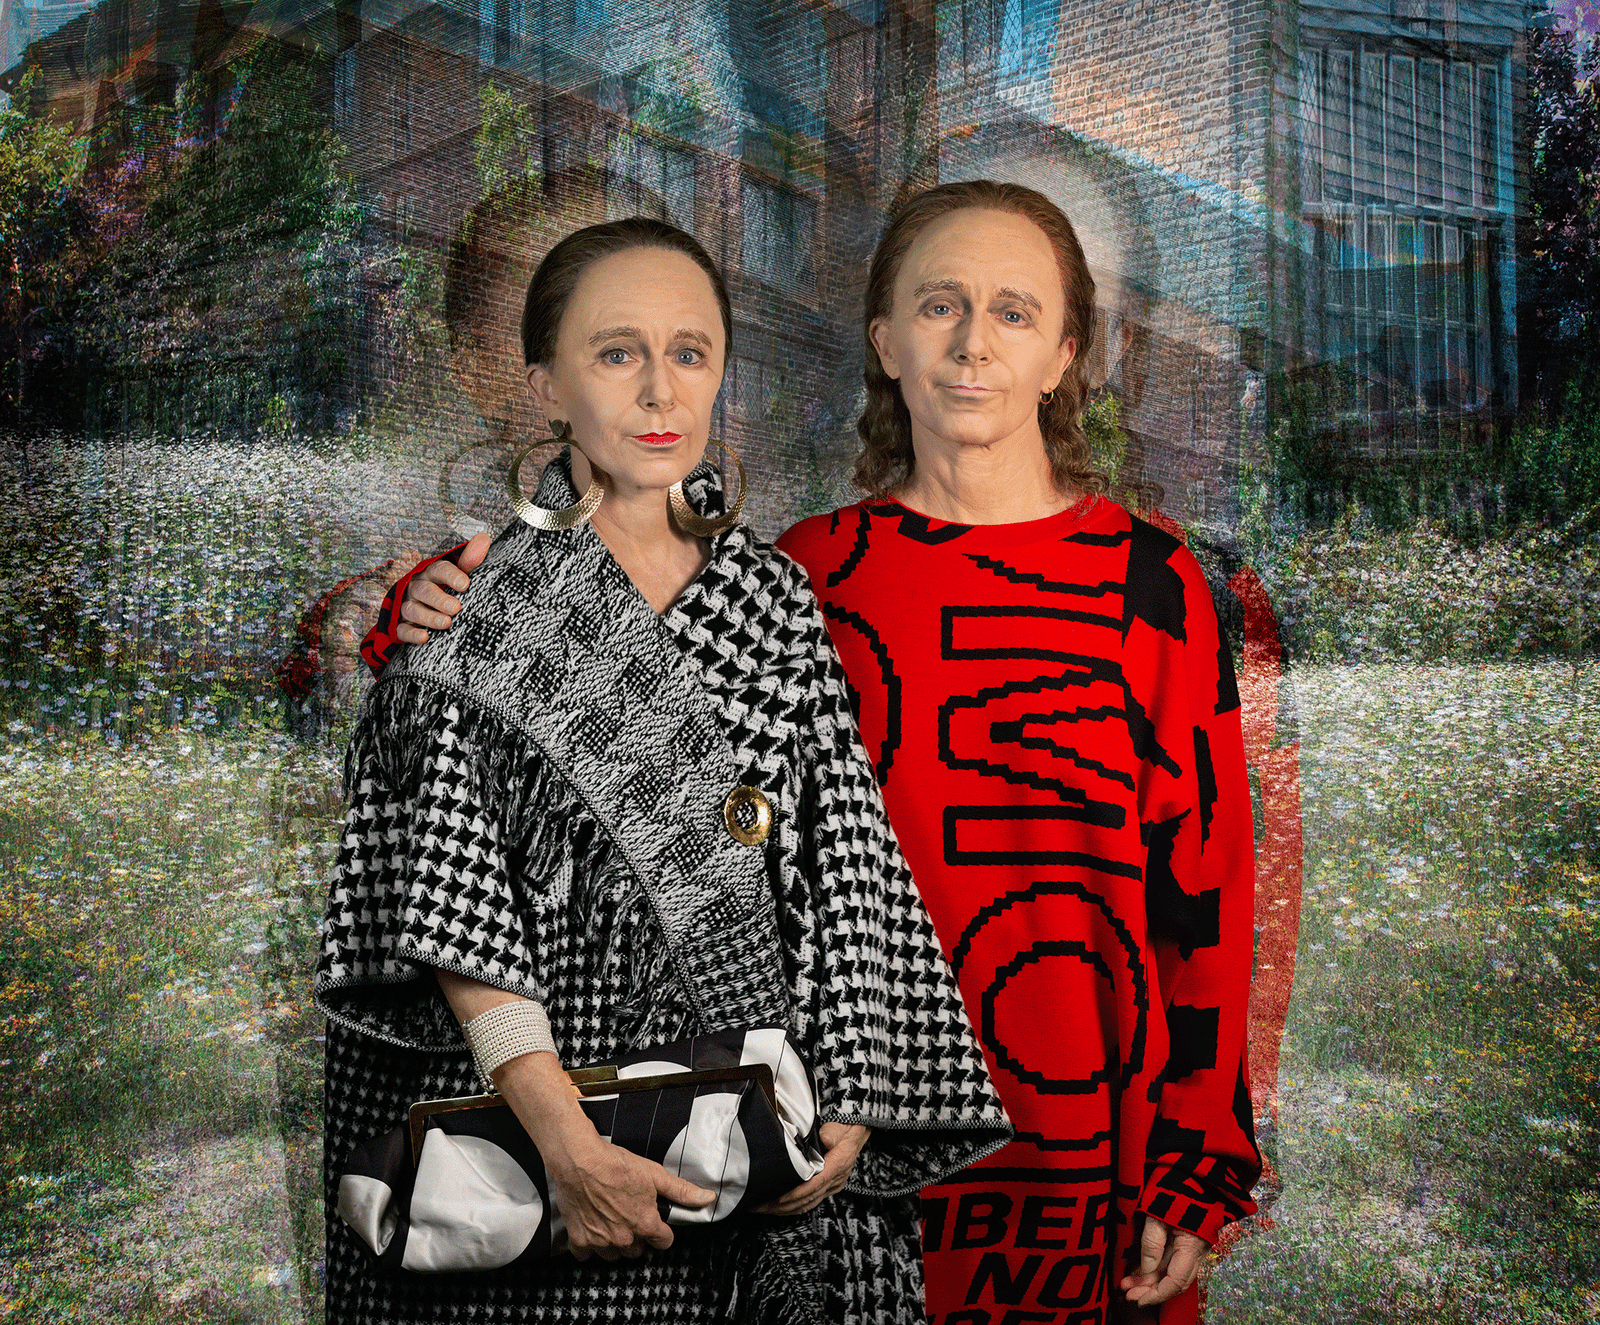 Cindy Sherman collaboration with Stella McCartney in 2020 | Cindy sherman, Fashion, Sherman